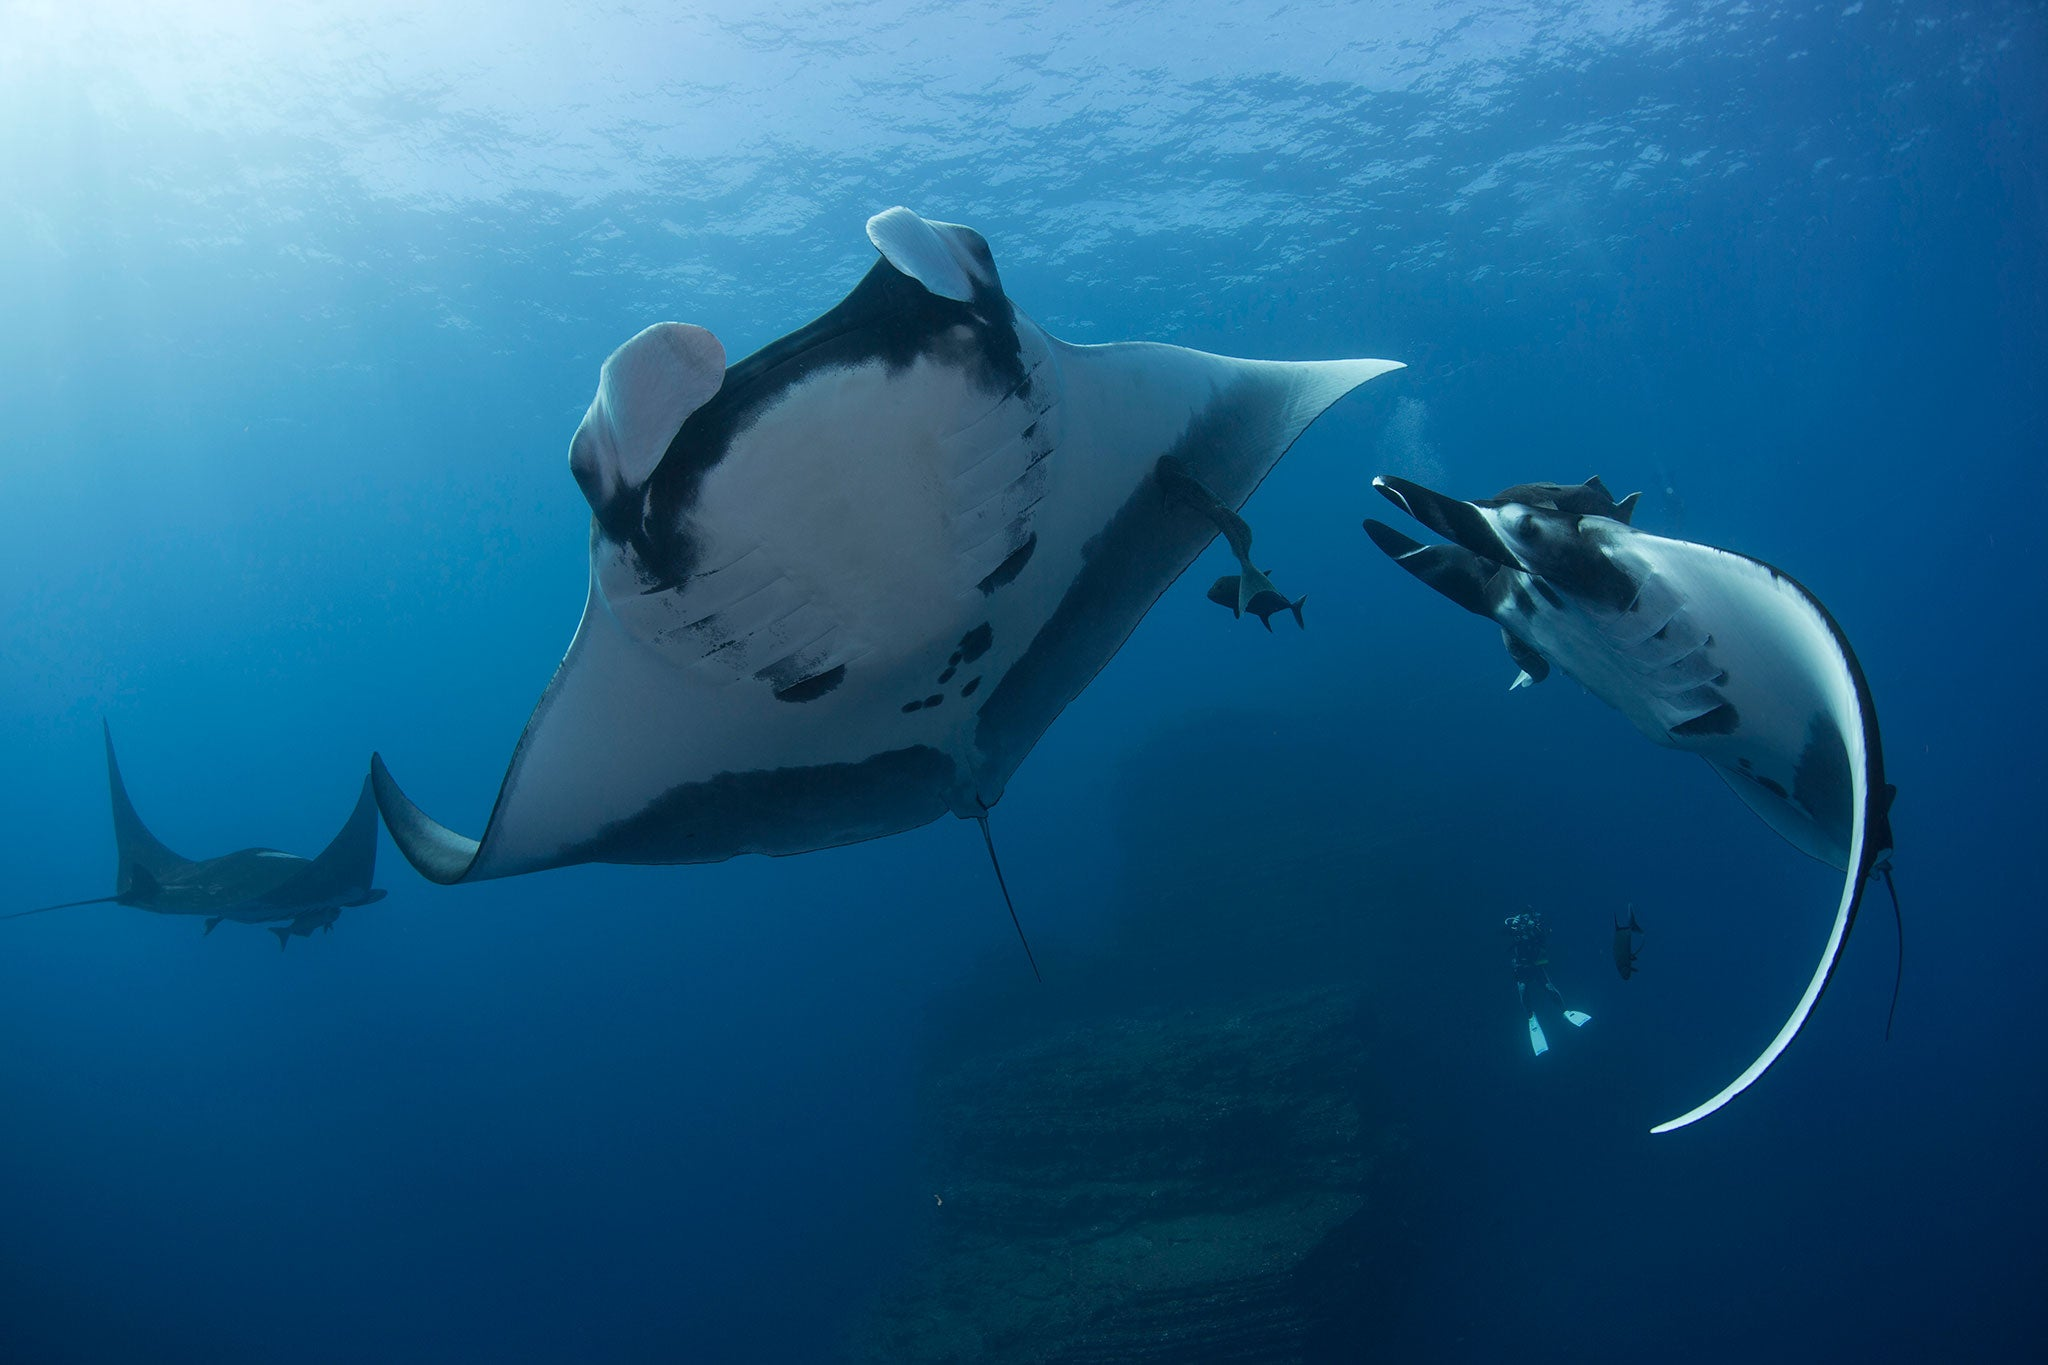 World's first known nursery for giant manta rays discovered in Gulf of Mexico